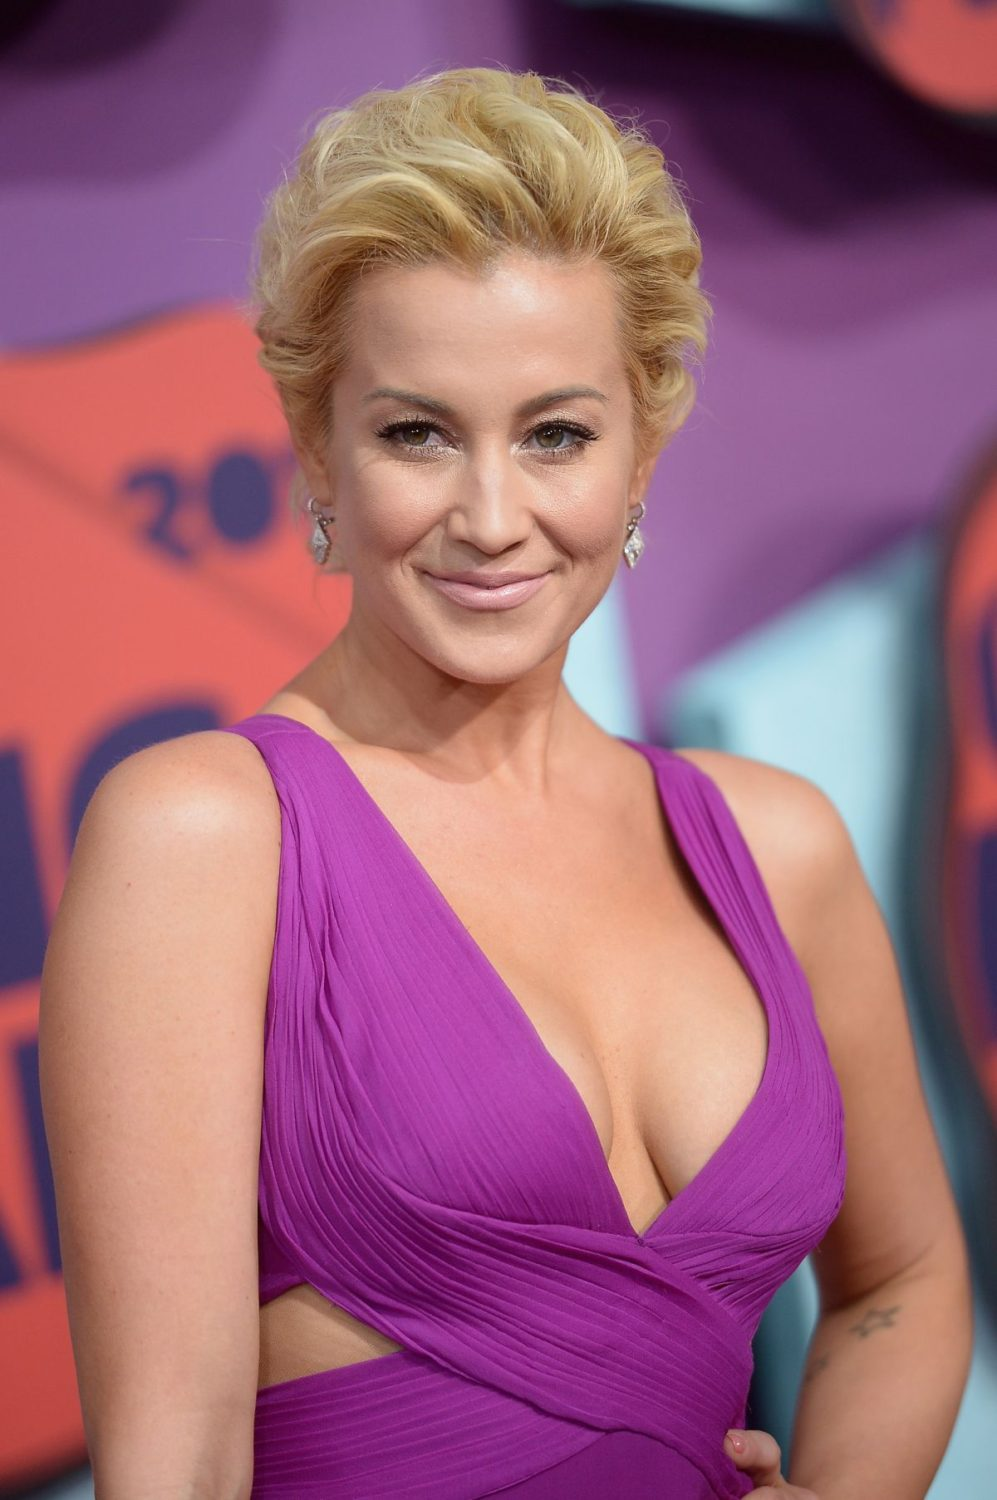 Kelly pickler nude pic sorry